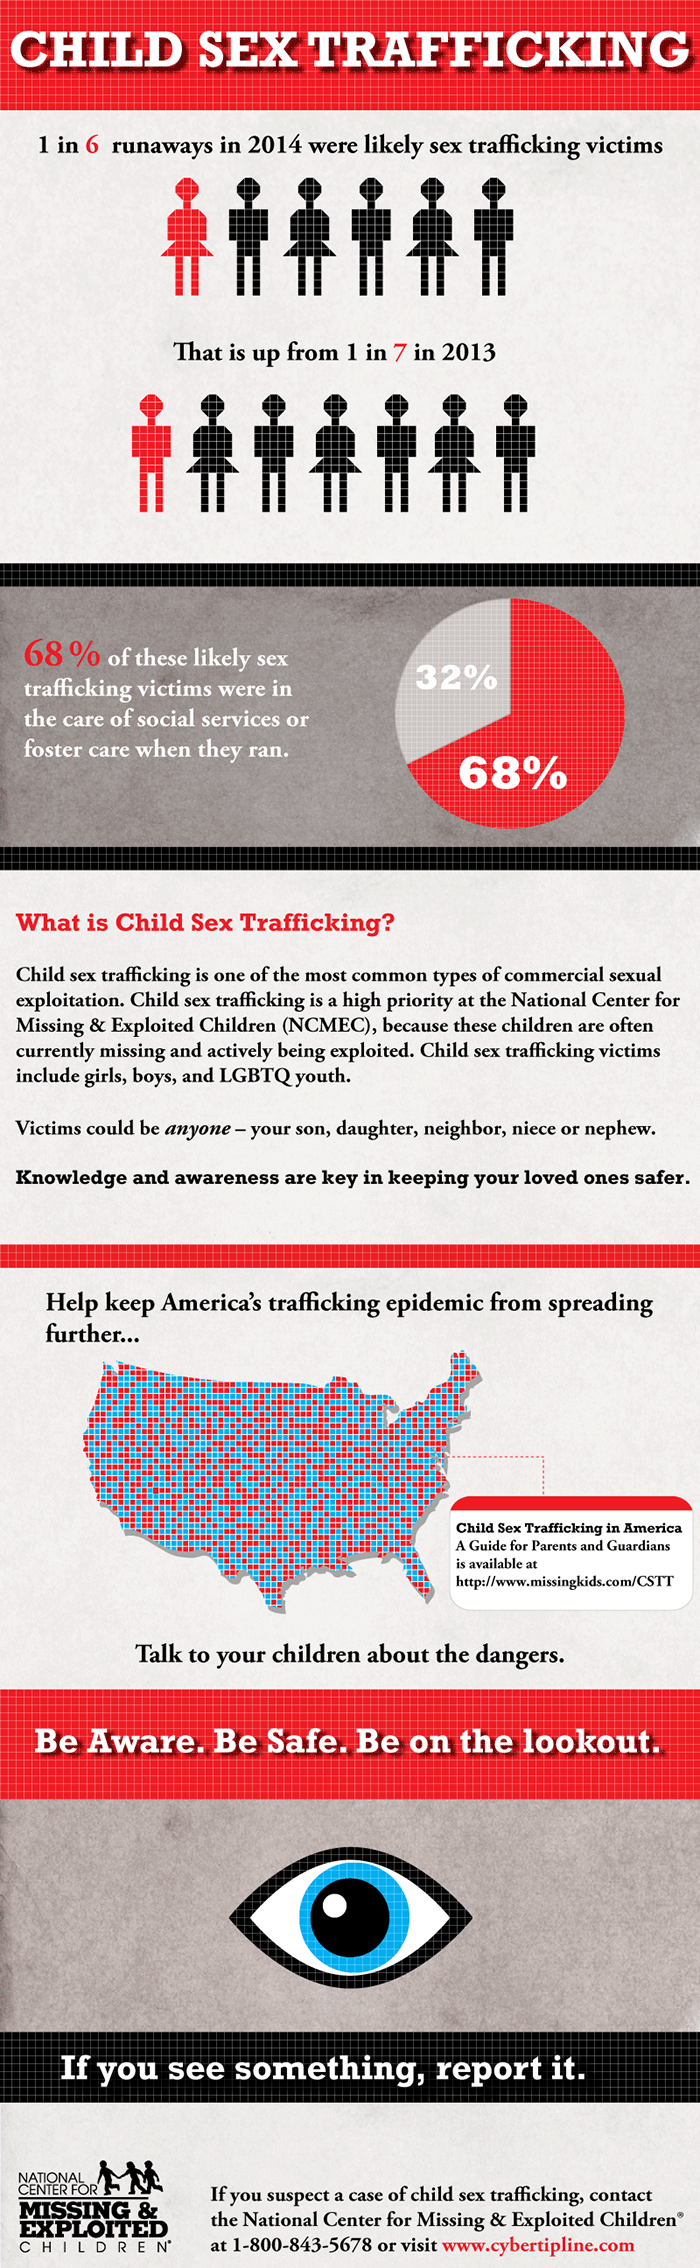 8 Signs to Detect Child Sex Trafficking When You Travel